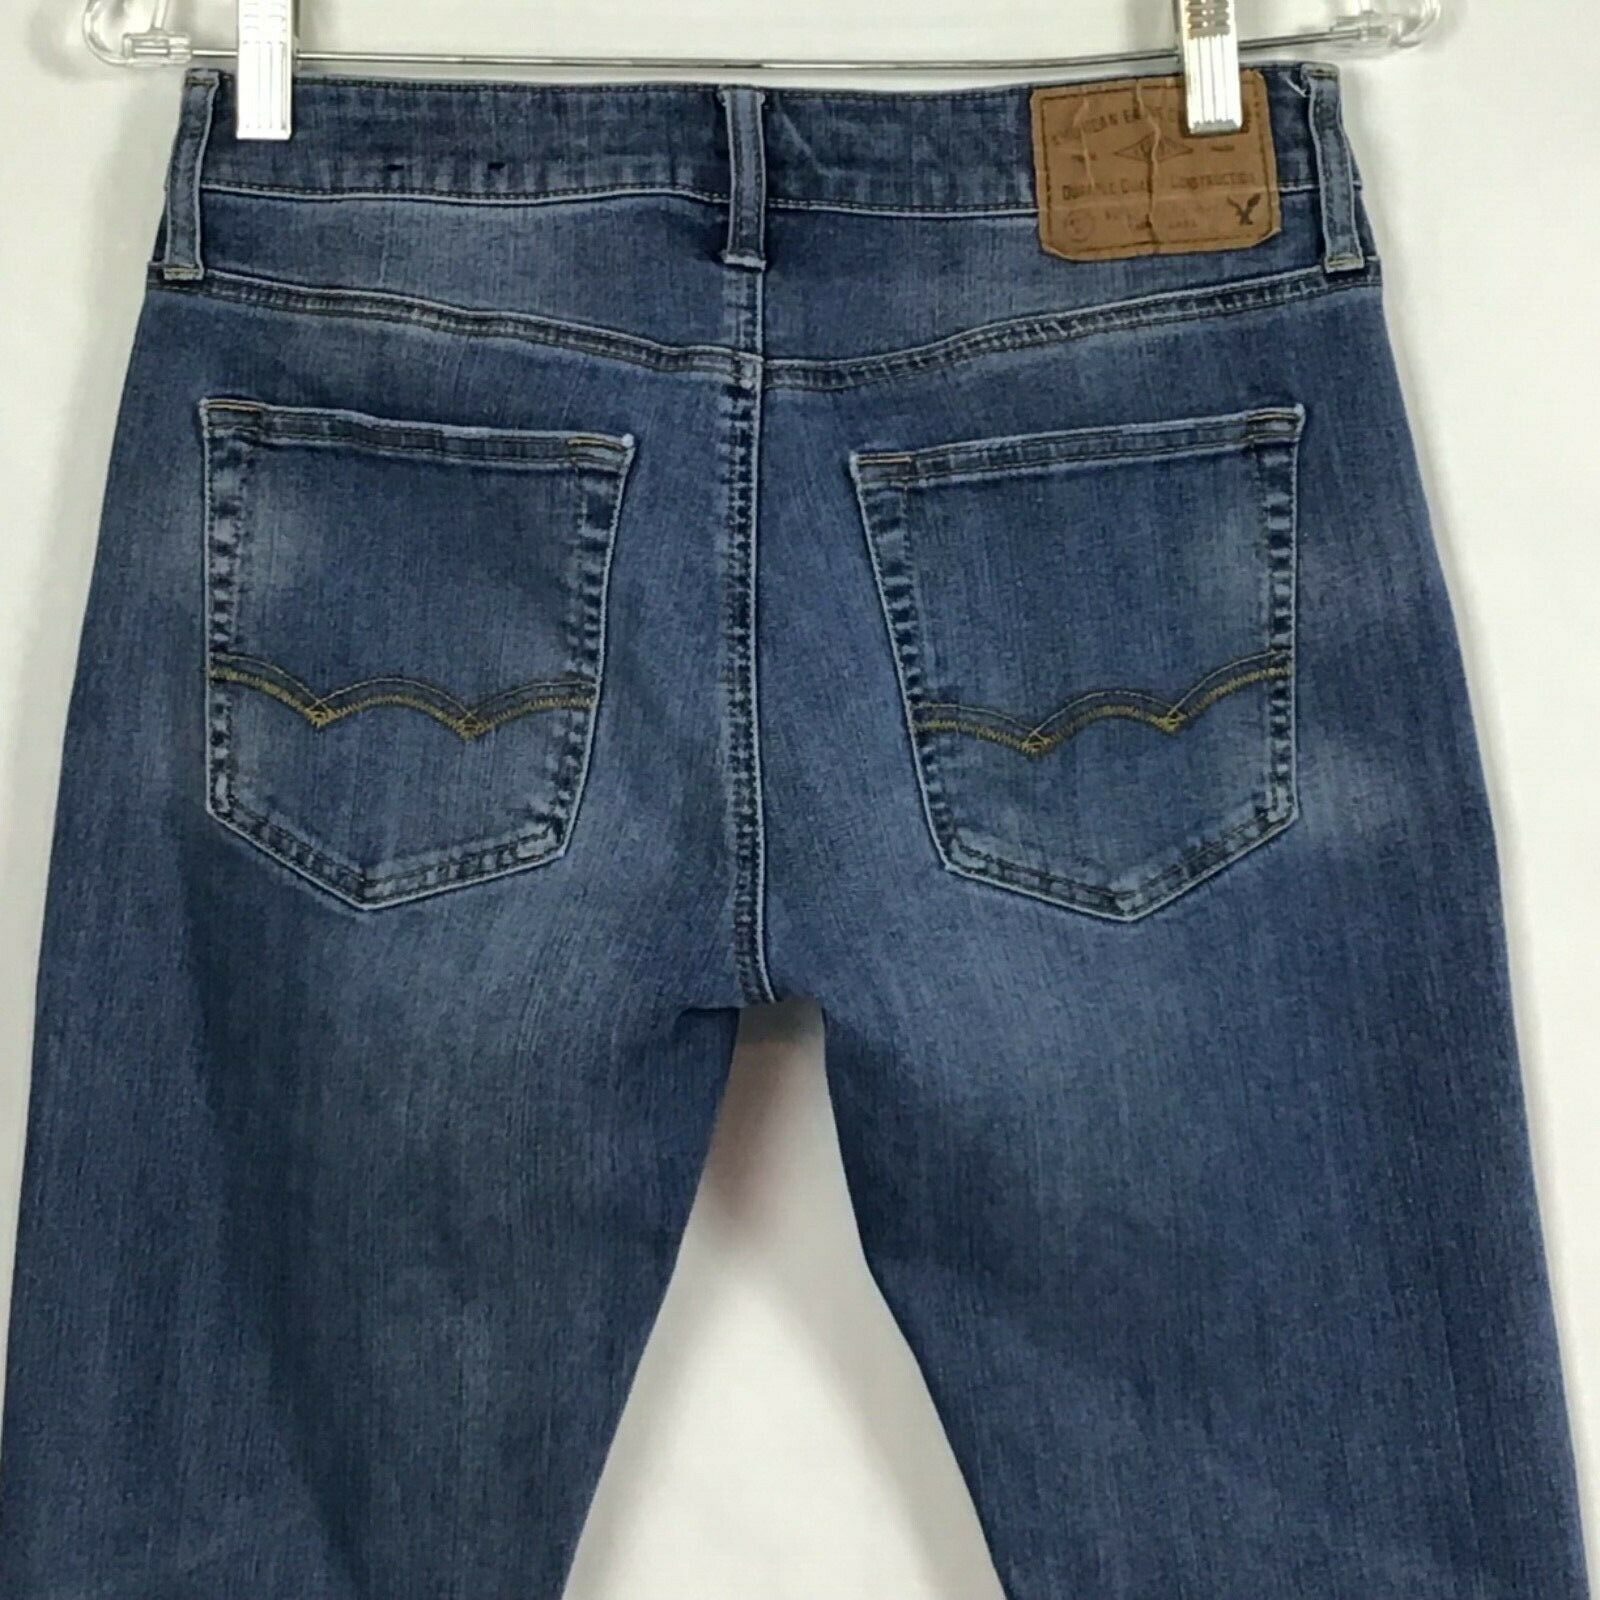 American Eagle Outfittters AEO Mens Denim Jeans 29x30 360 Extreme Flex Stretch   image 4